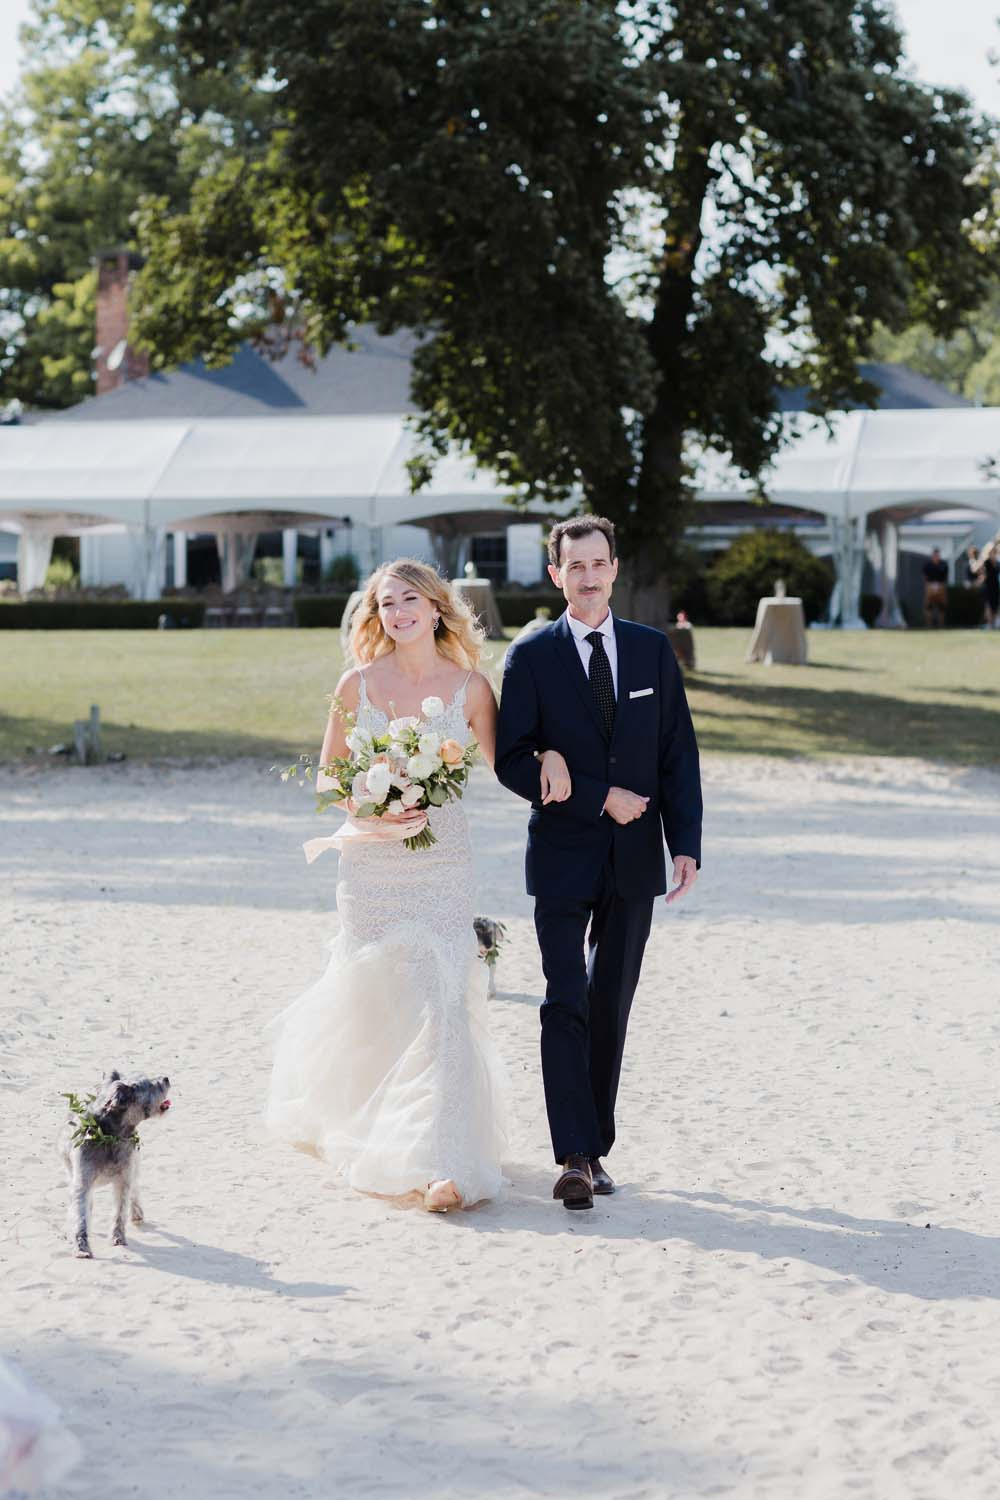 A Whimsical Wedding at Windmill Point, Ontario - Beachside